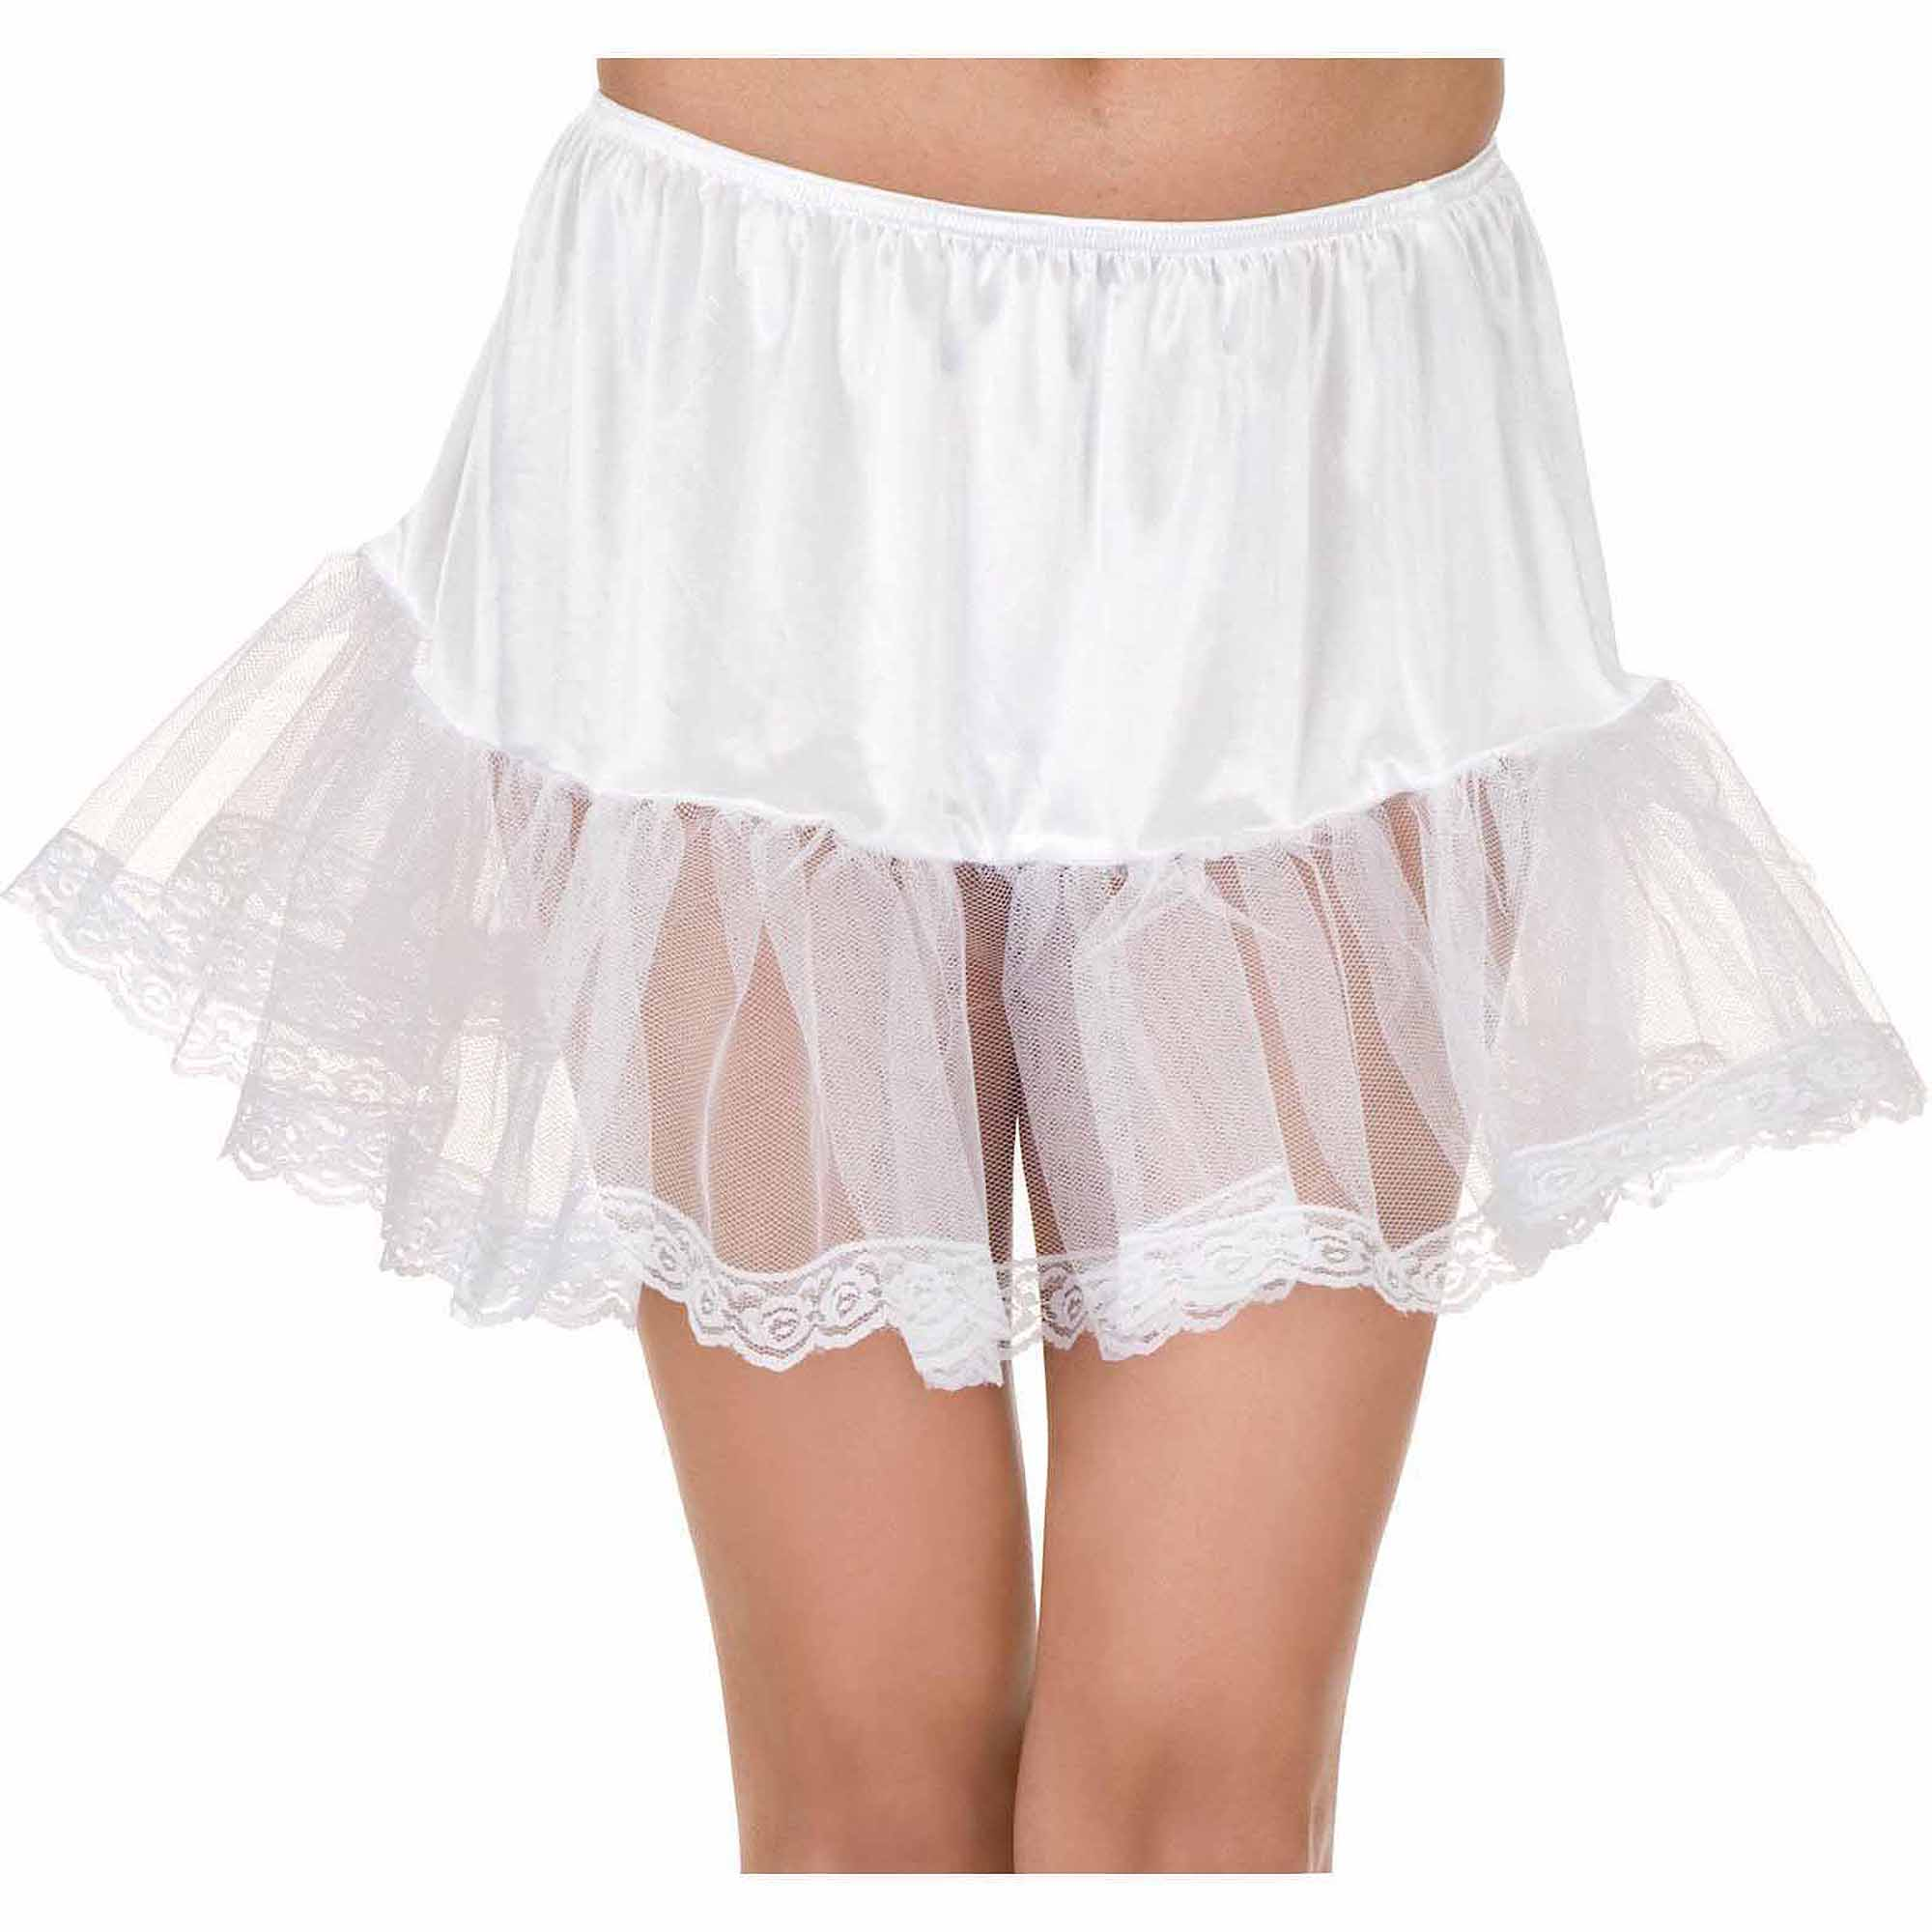 Lace White Petticoat Adult Halloween Accessory